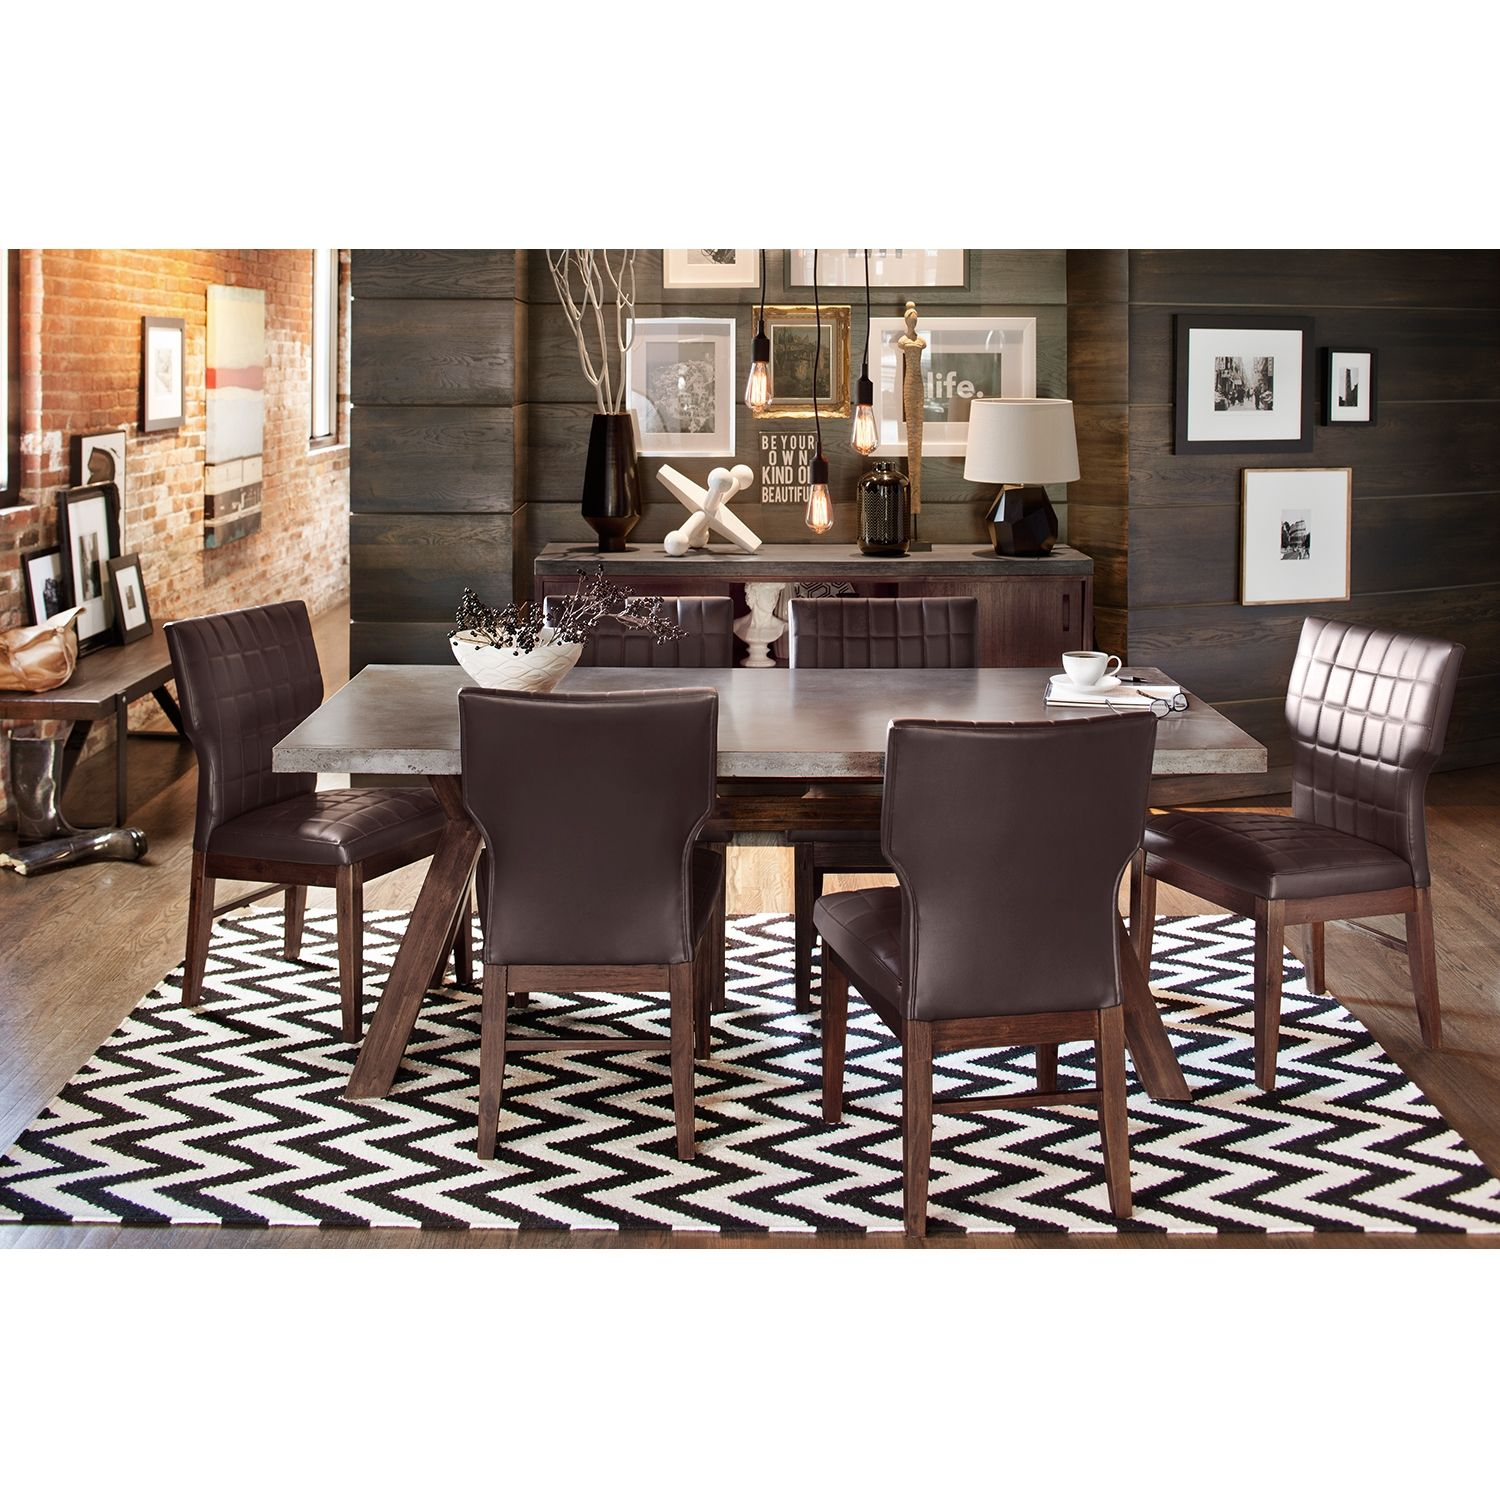 Surprising American Dining Room Furniture Gallery House